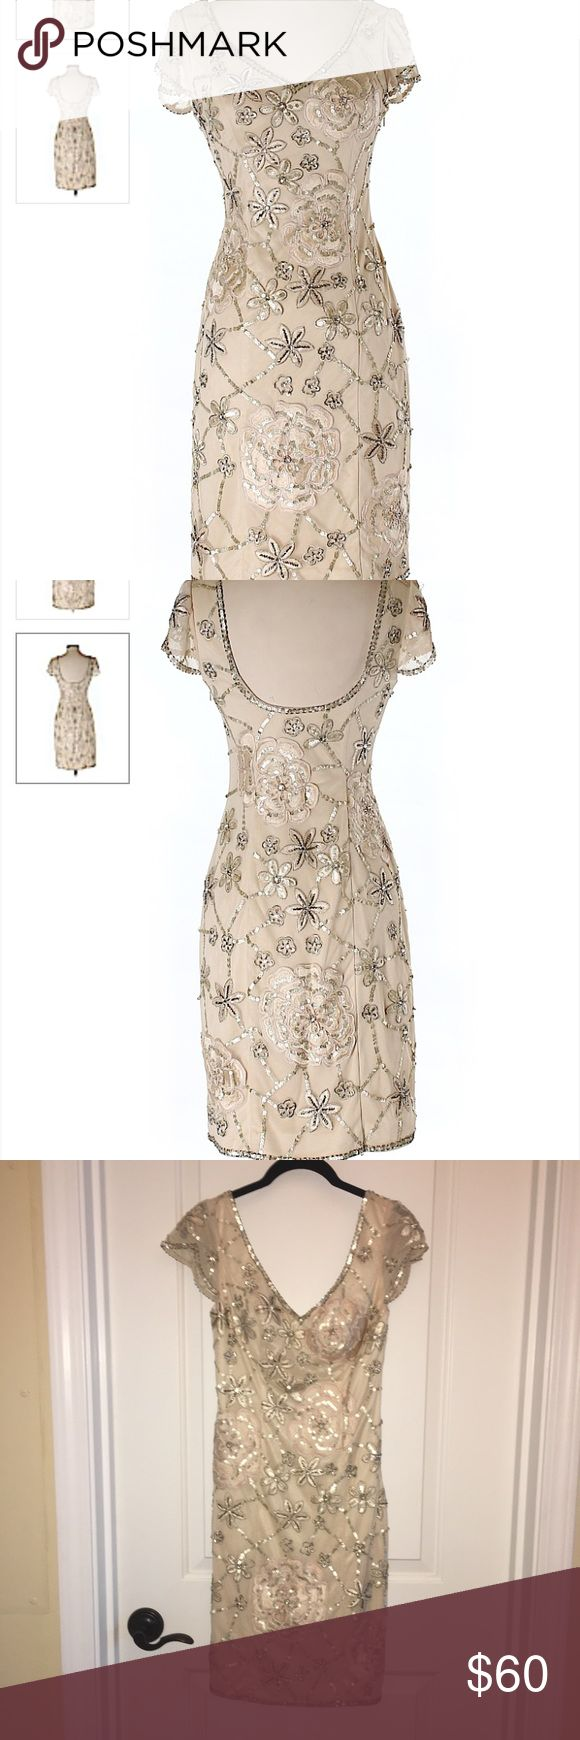 """Sue Wong Embroidered/Embellished Dress size 2 Sue Wong cocktail dress, size 2. Champagne colored dress with embroidery and beading/sequin embellishments. Few areas of loose threads, missing embellishments (see pics). Overall in very good used condition. Concealed side zipper. 100% nylon. A-line silhouette. Approx 32"""" in length. Please ask any questions! Sue Wong Dresses"""